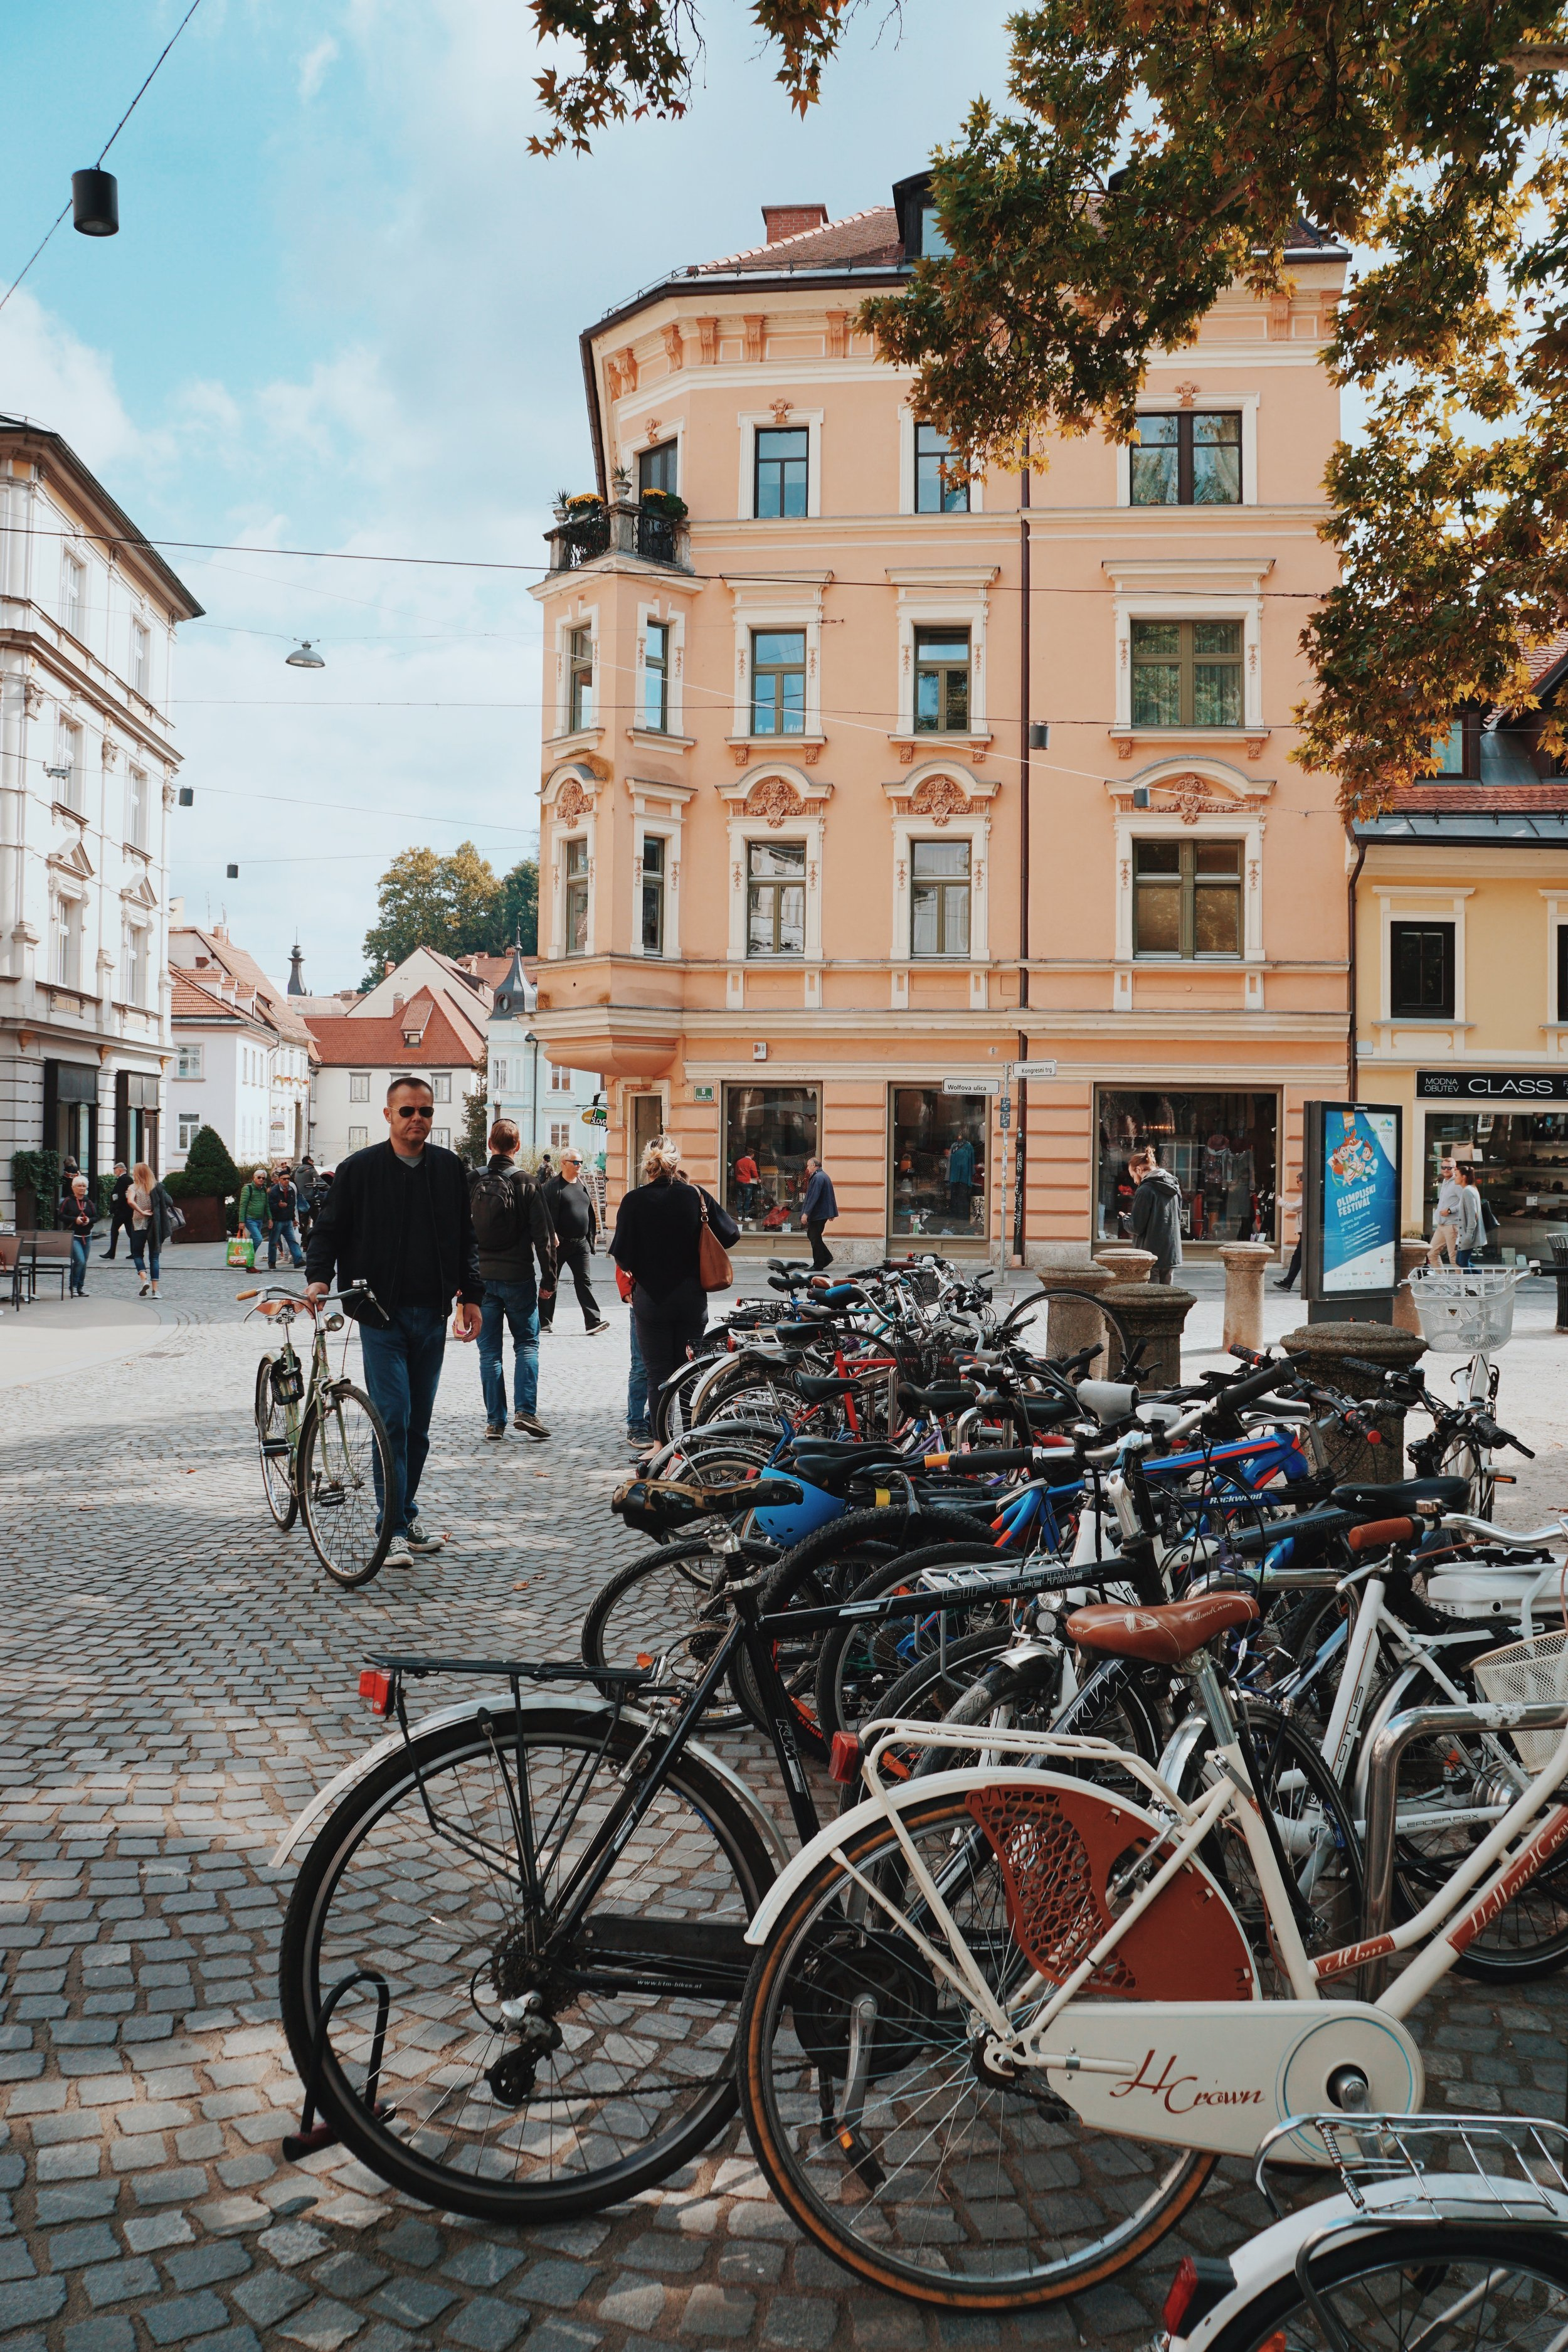 3. Explore the city on two wheels -